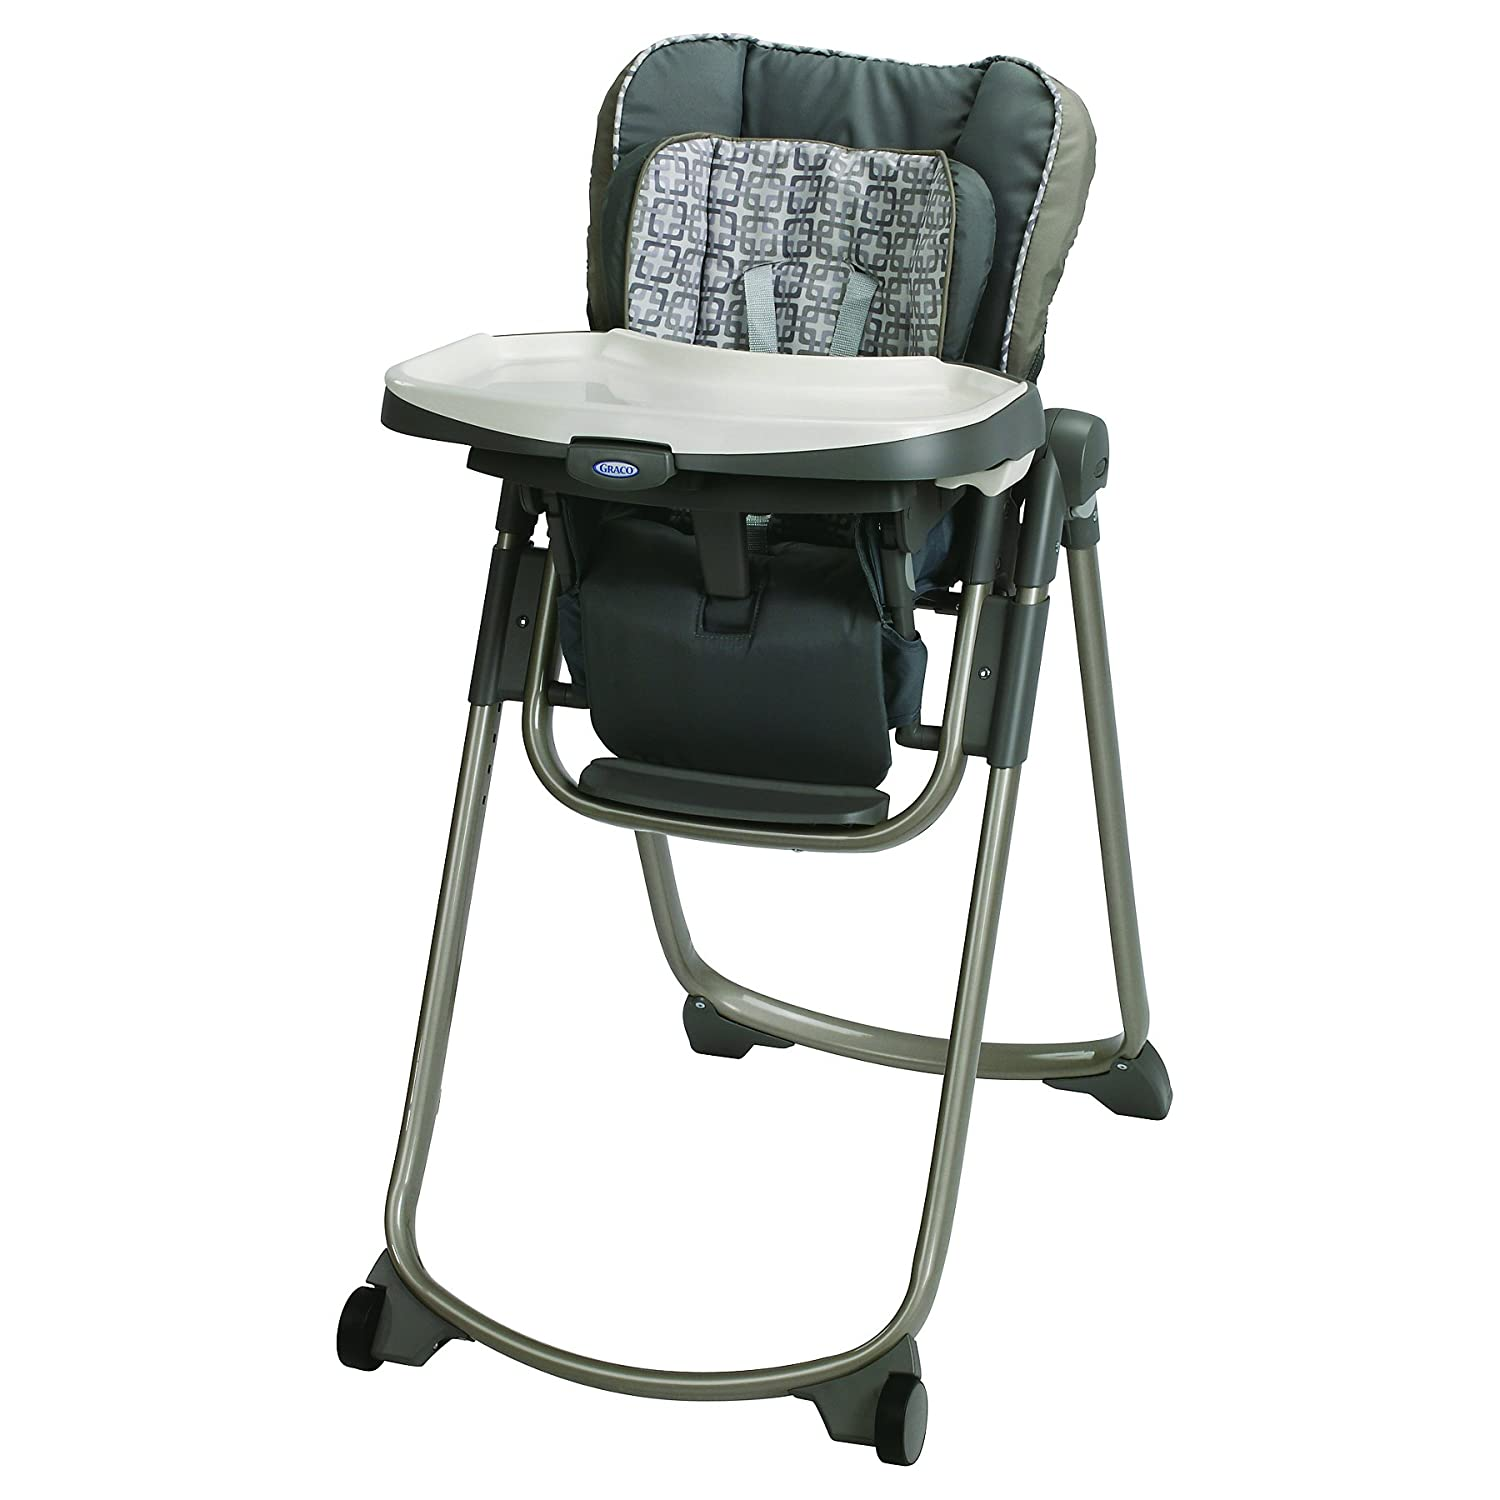 Amazon Graco Slim Spaces High Chair Manor Baby